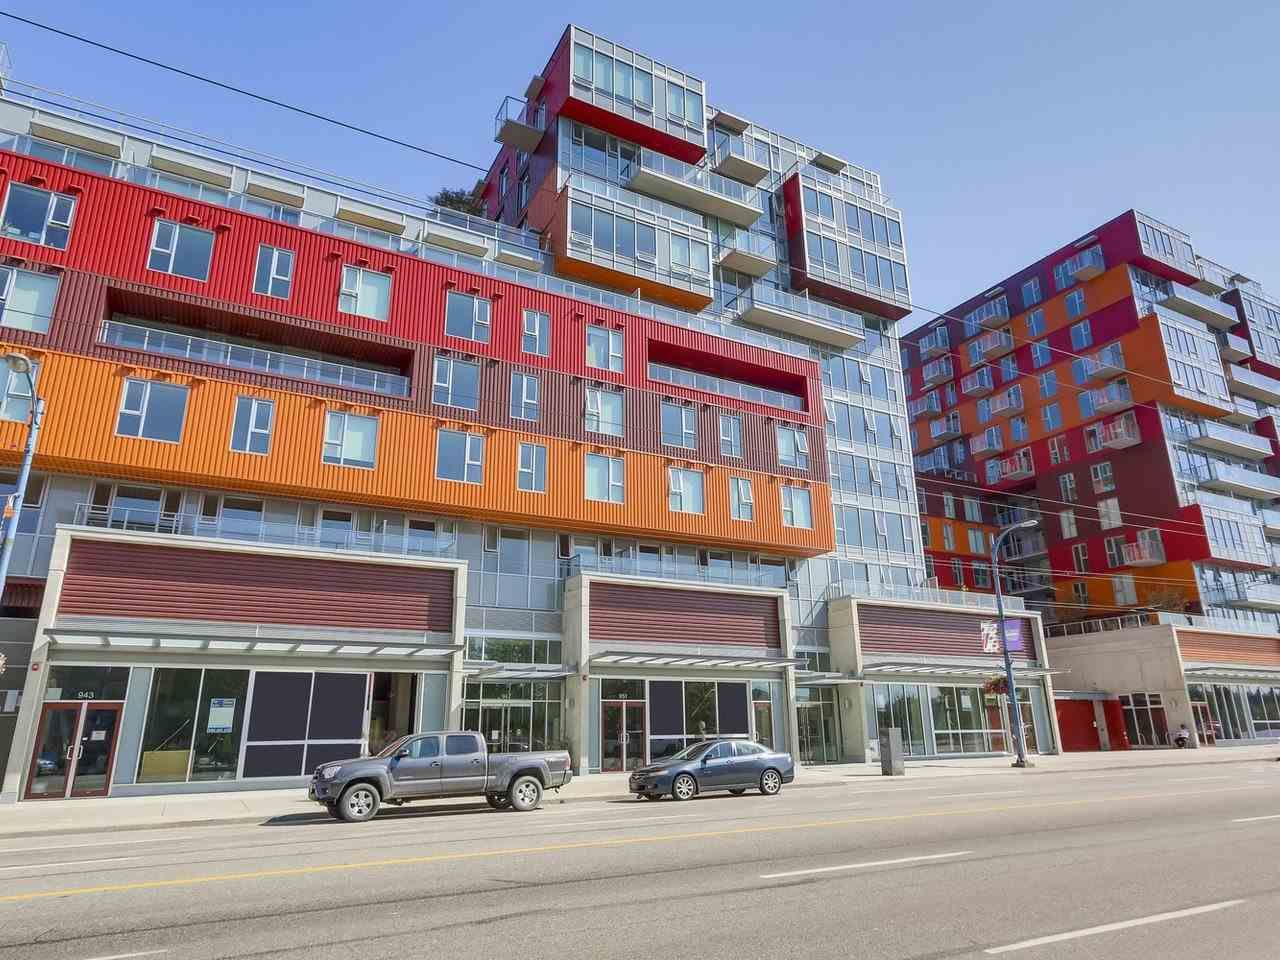 Main Photo: 803 955 E HASTINGS STREET in Vancouver: Hastings Condo for sale (Vancouver East)  : MLS®# R2317491